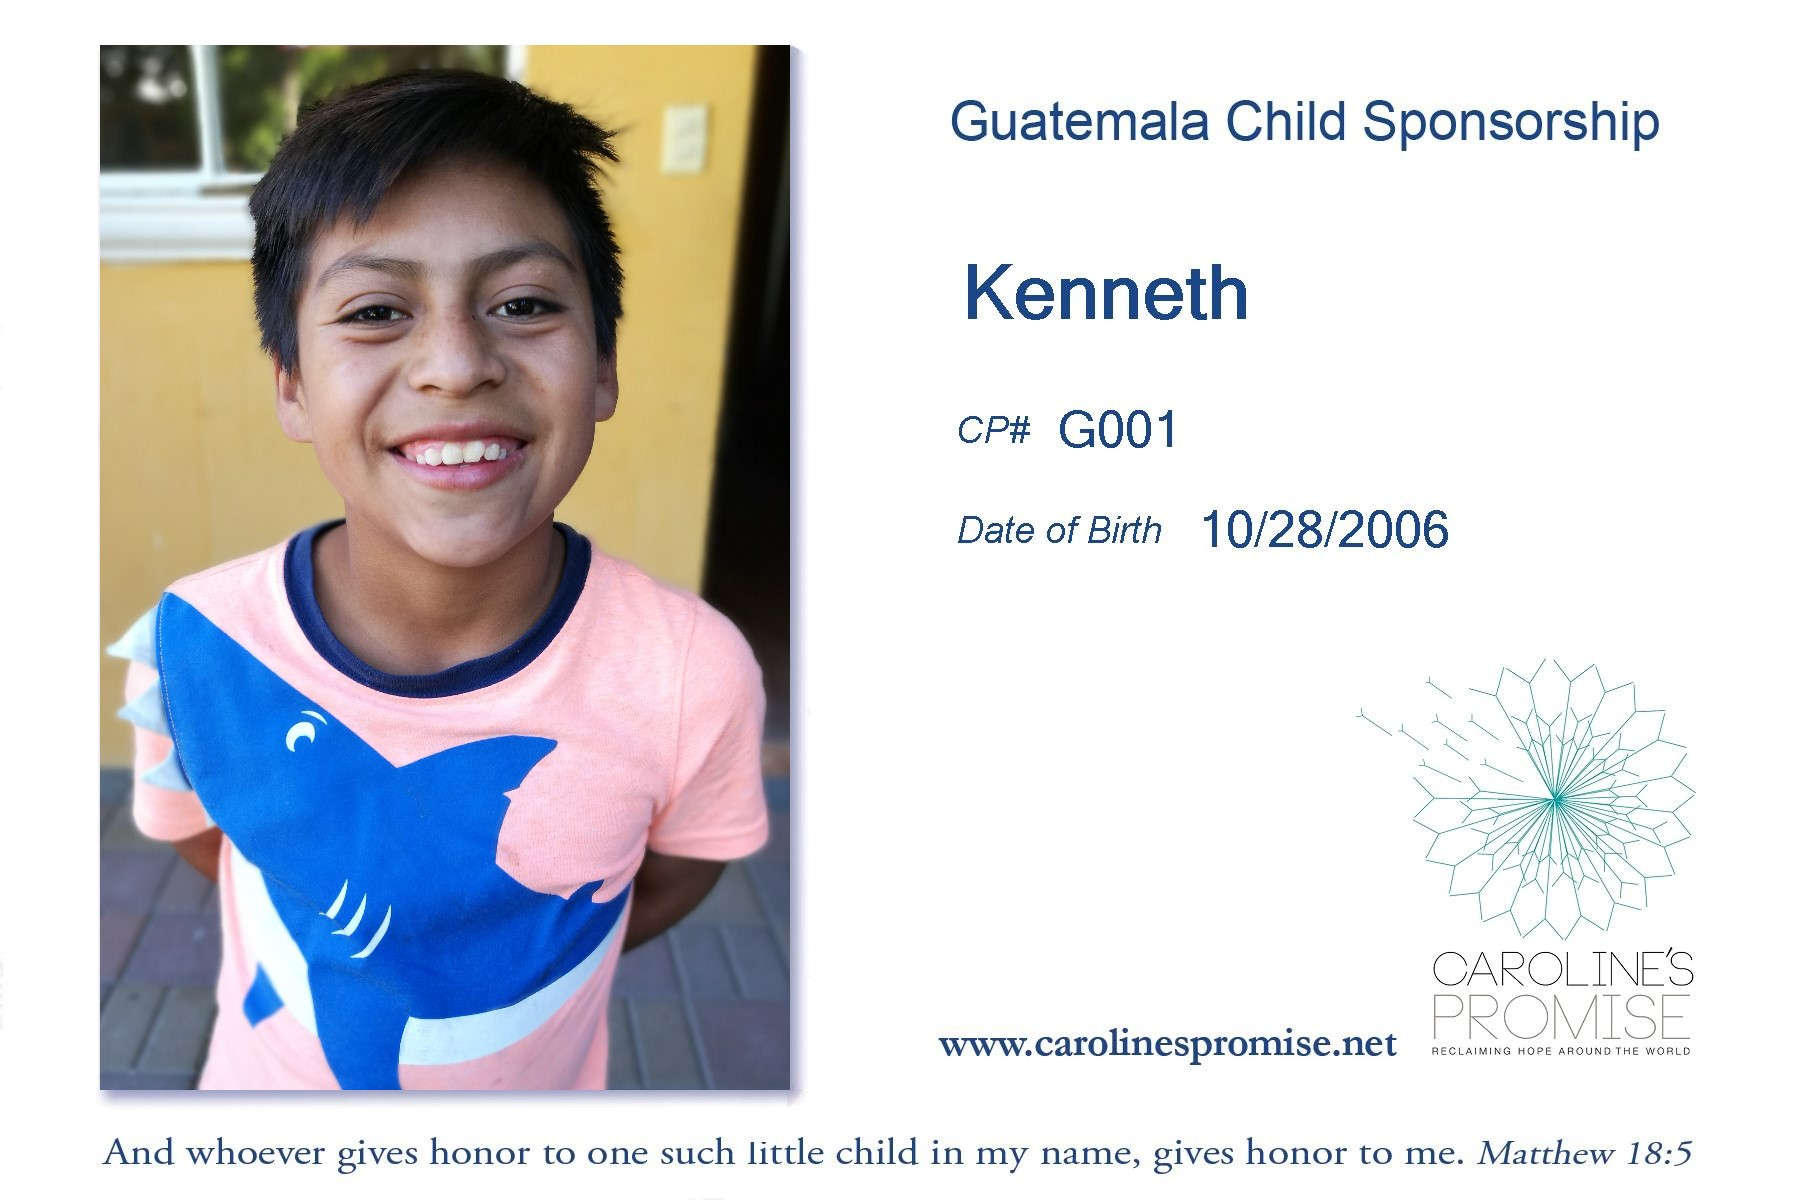 CPG001 Kenneth sponsor card.jpg